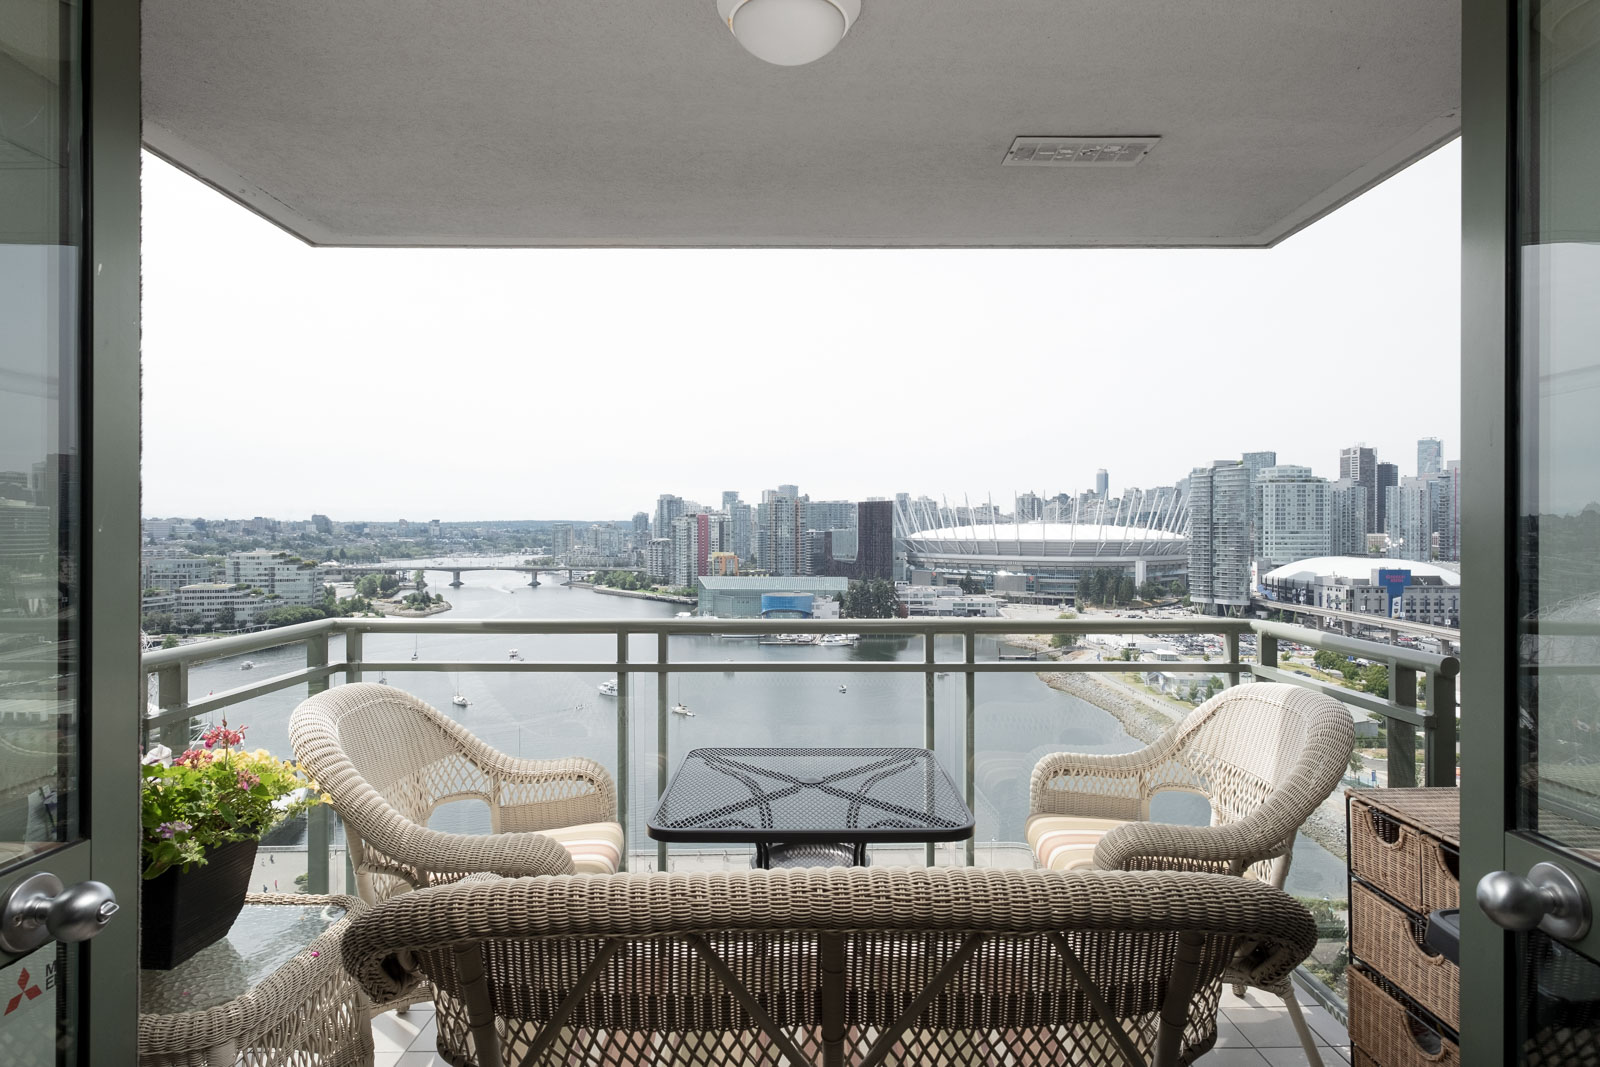 Private balcony of furnished Vancouver rental overlooking waterfront.